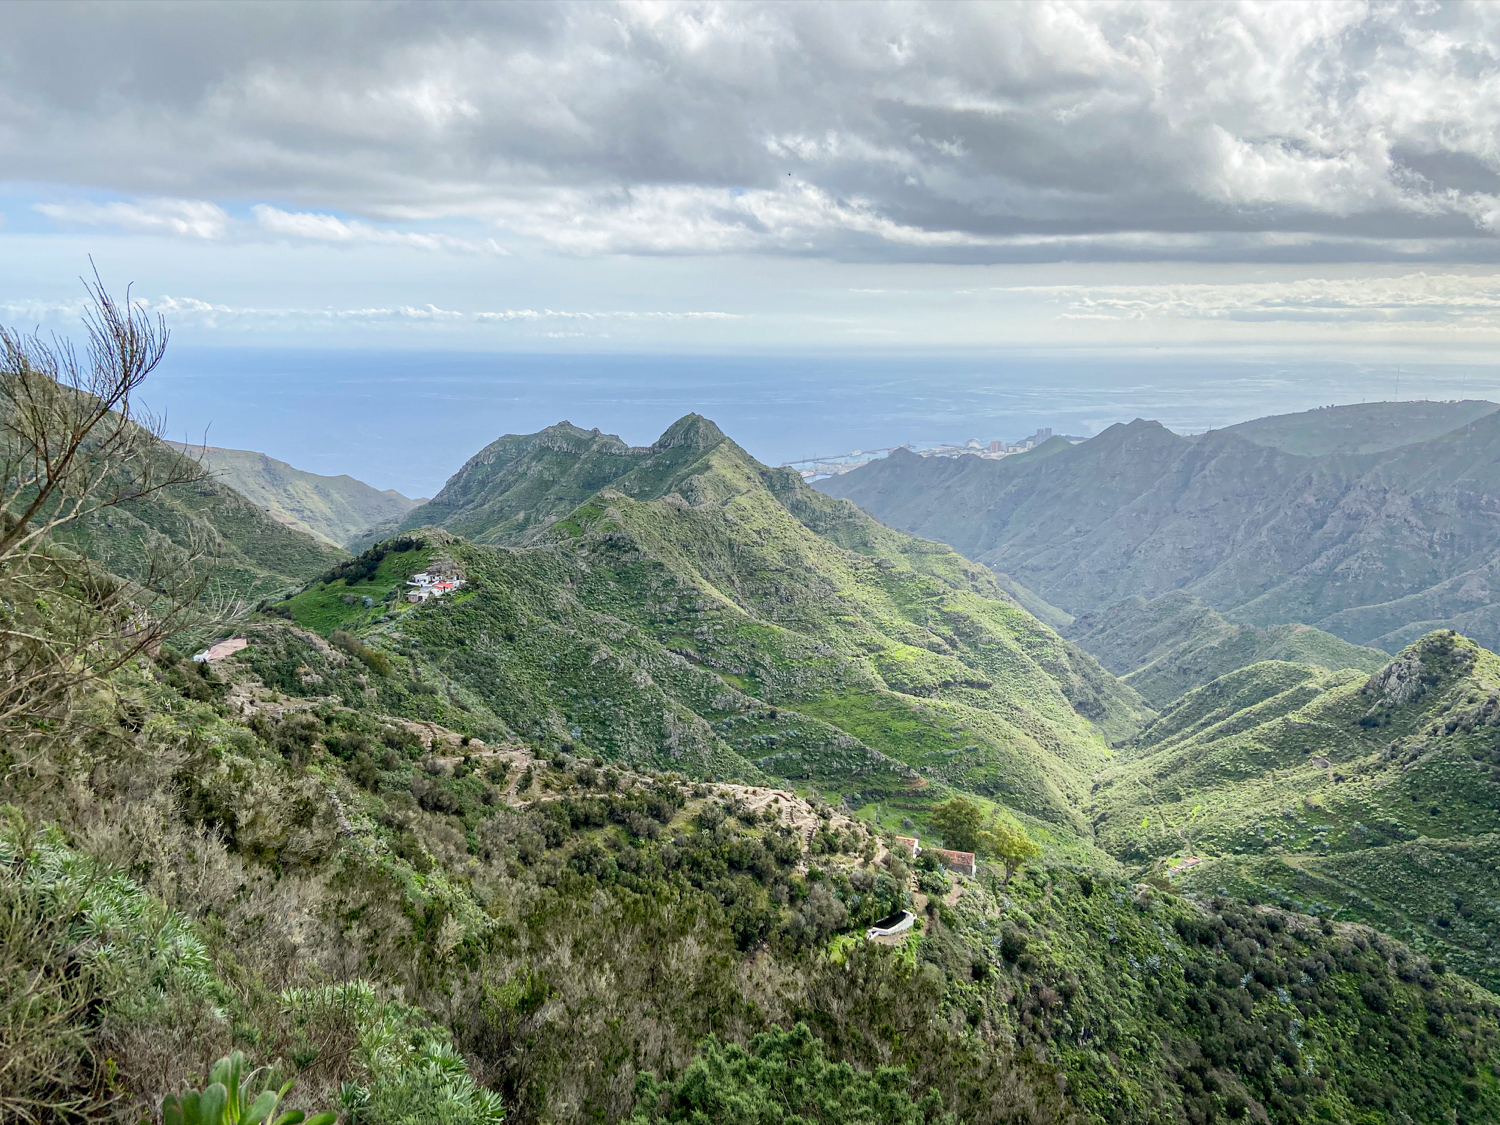 View from Los Berros to the Fortaleza and the Barranco de Valle Luis